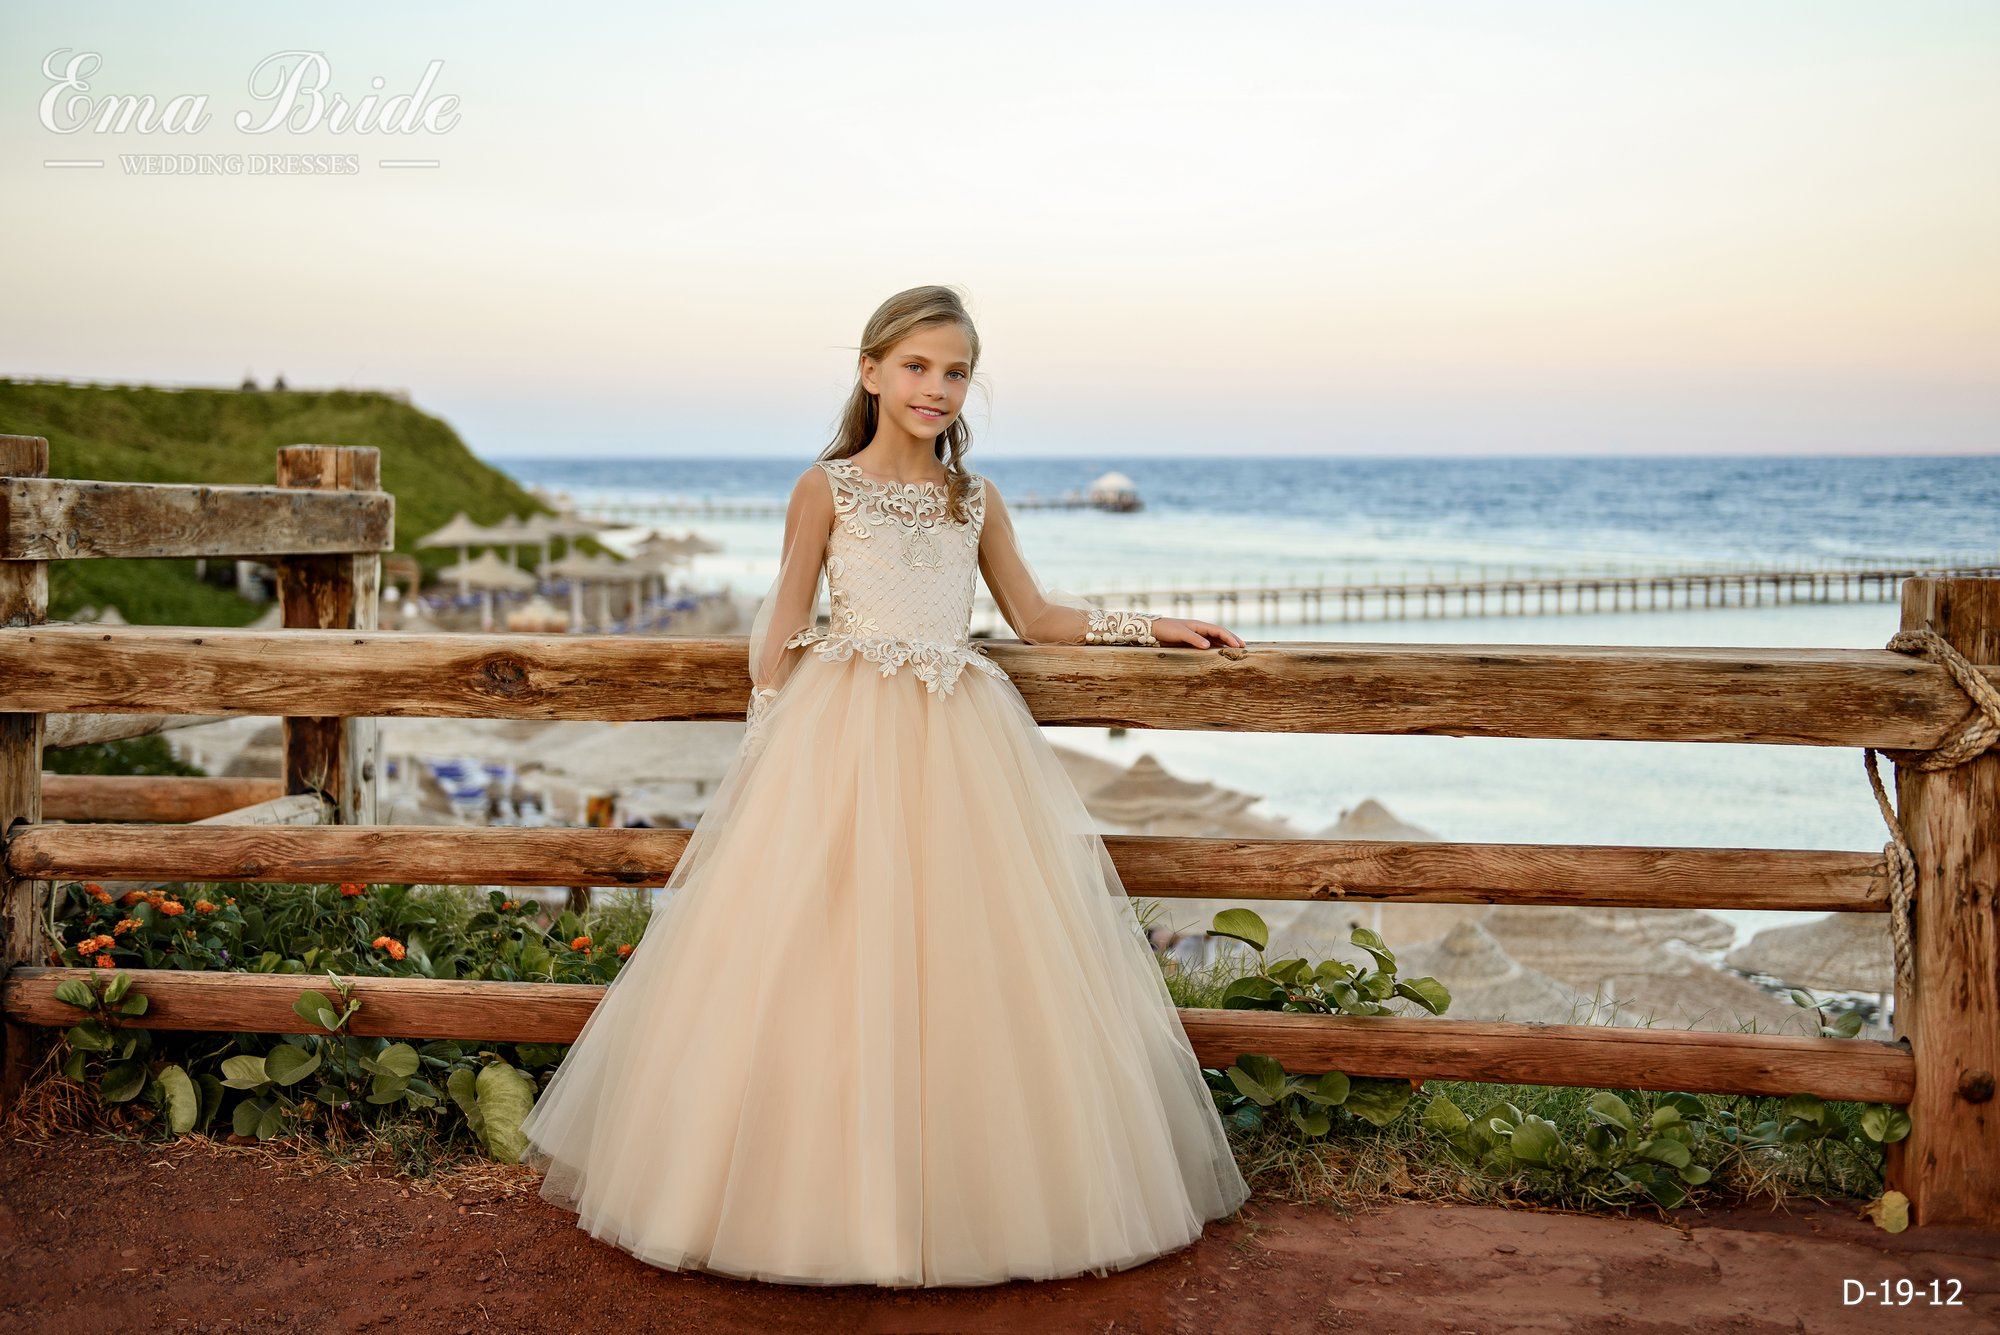 Children's dress by EmaBride D-19-12 2019-4